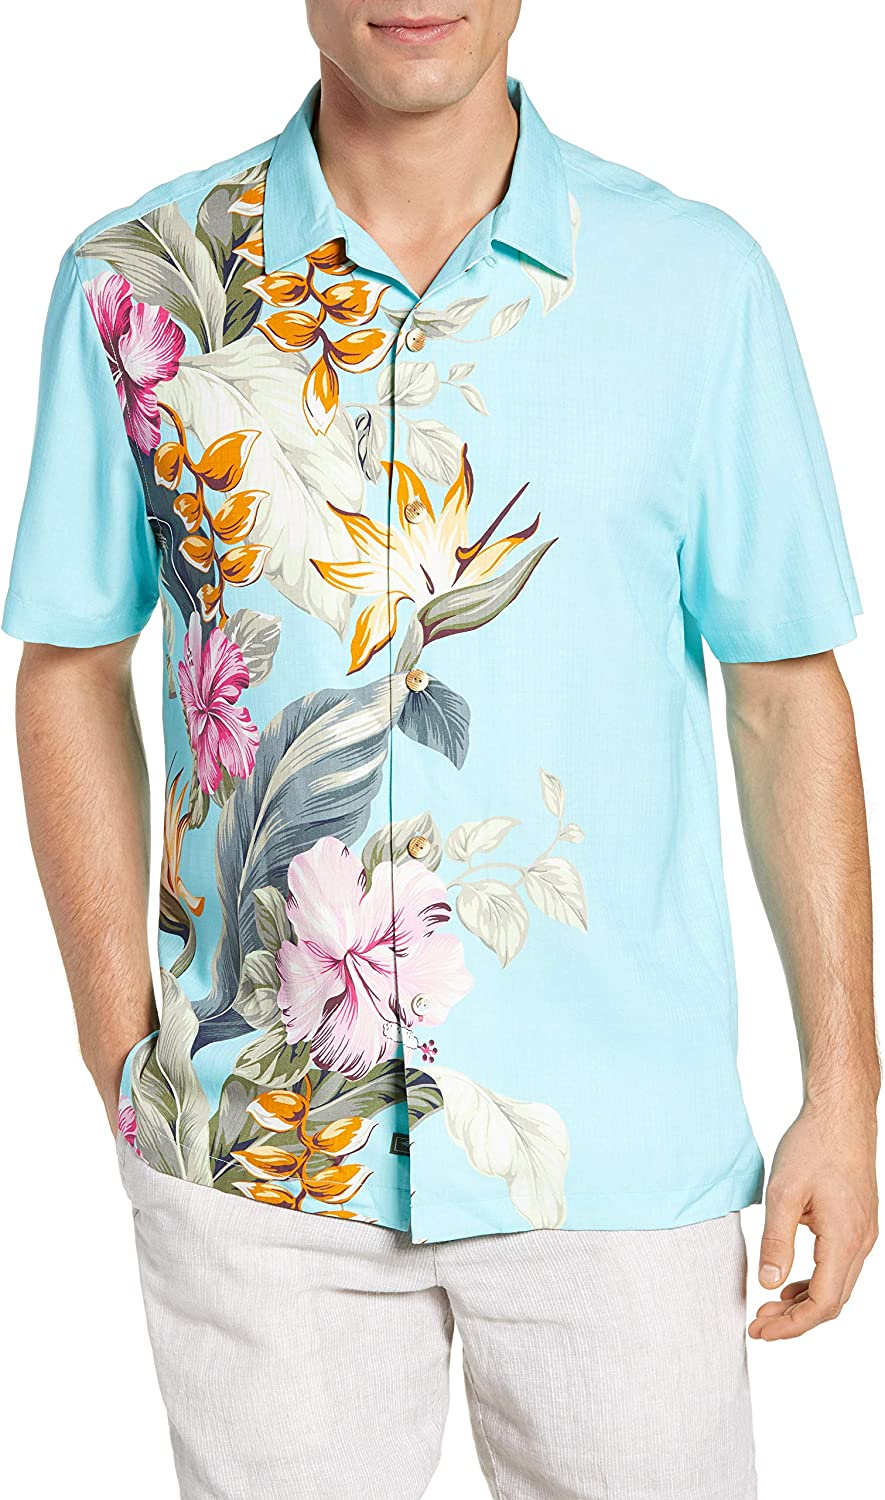 Tommy Bahama Garden of Hope & Courage Men's Big and Tall SS Button Down Shirt, Blue Swell, LT